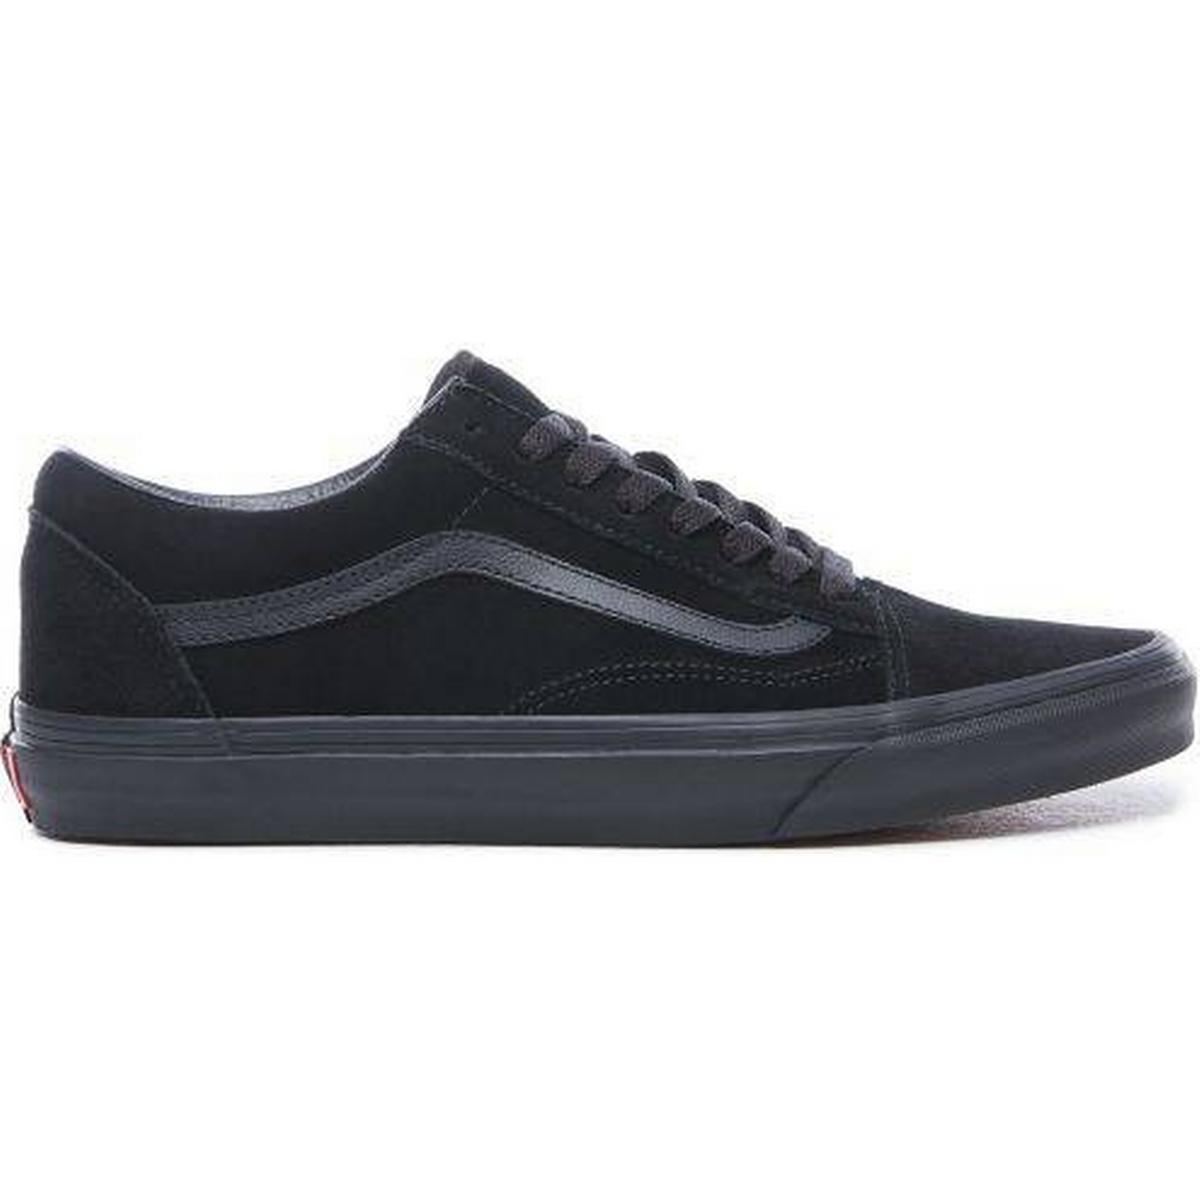 Vans old skool suede black • Find billigste pris hos